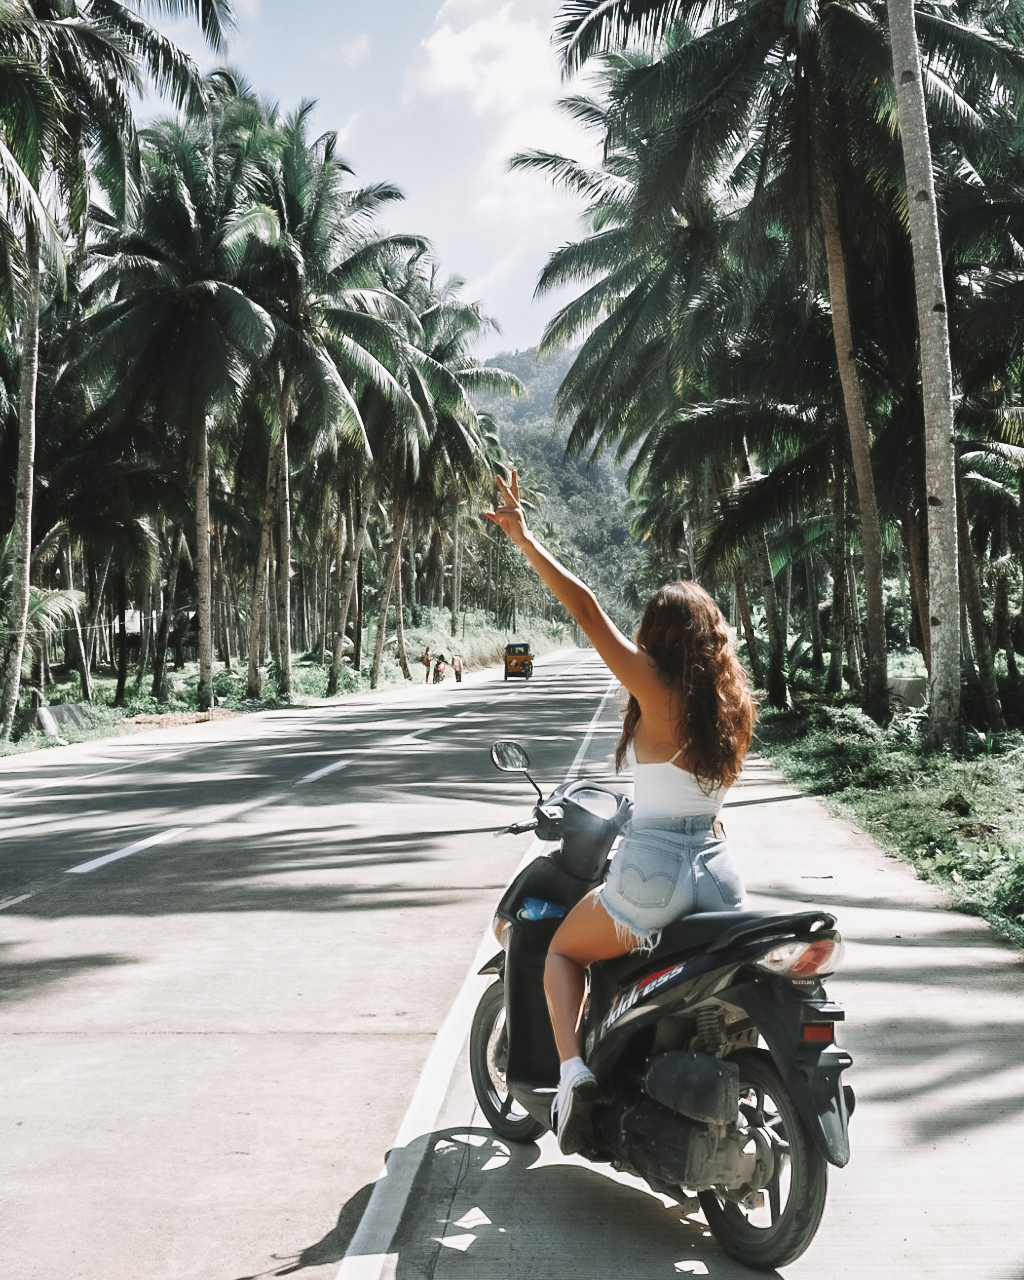 tips for traveling solo as a female